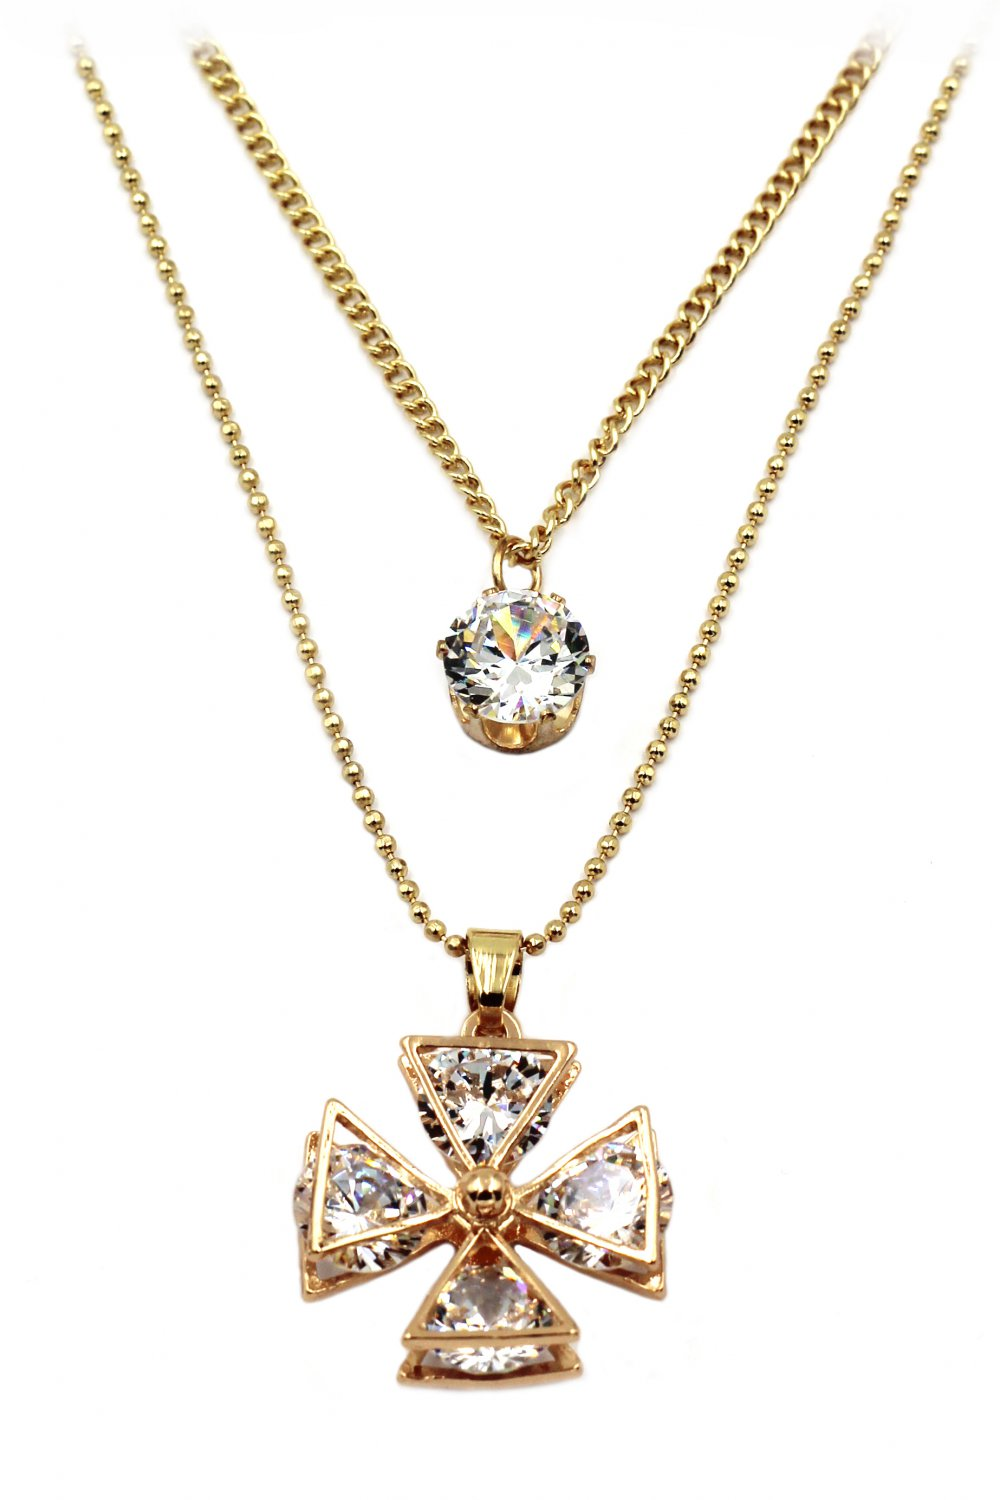 Duplexes crystal windmill gold necklace